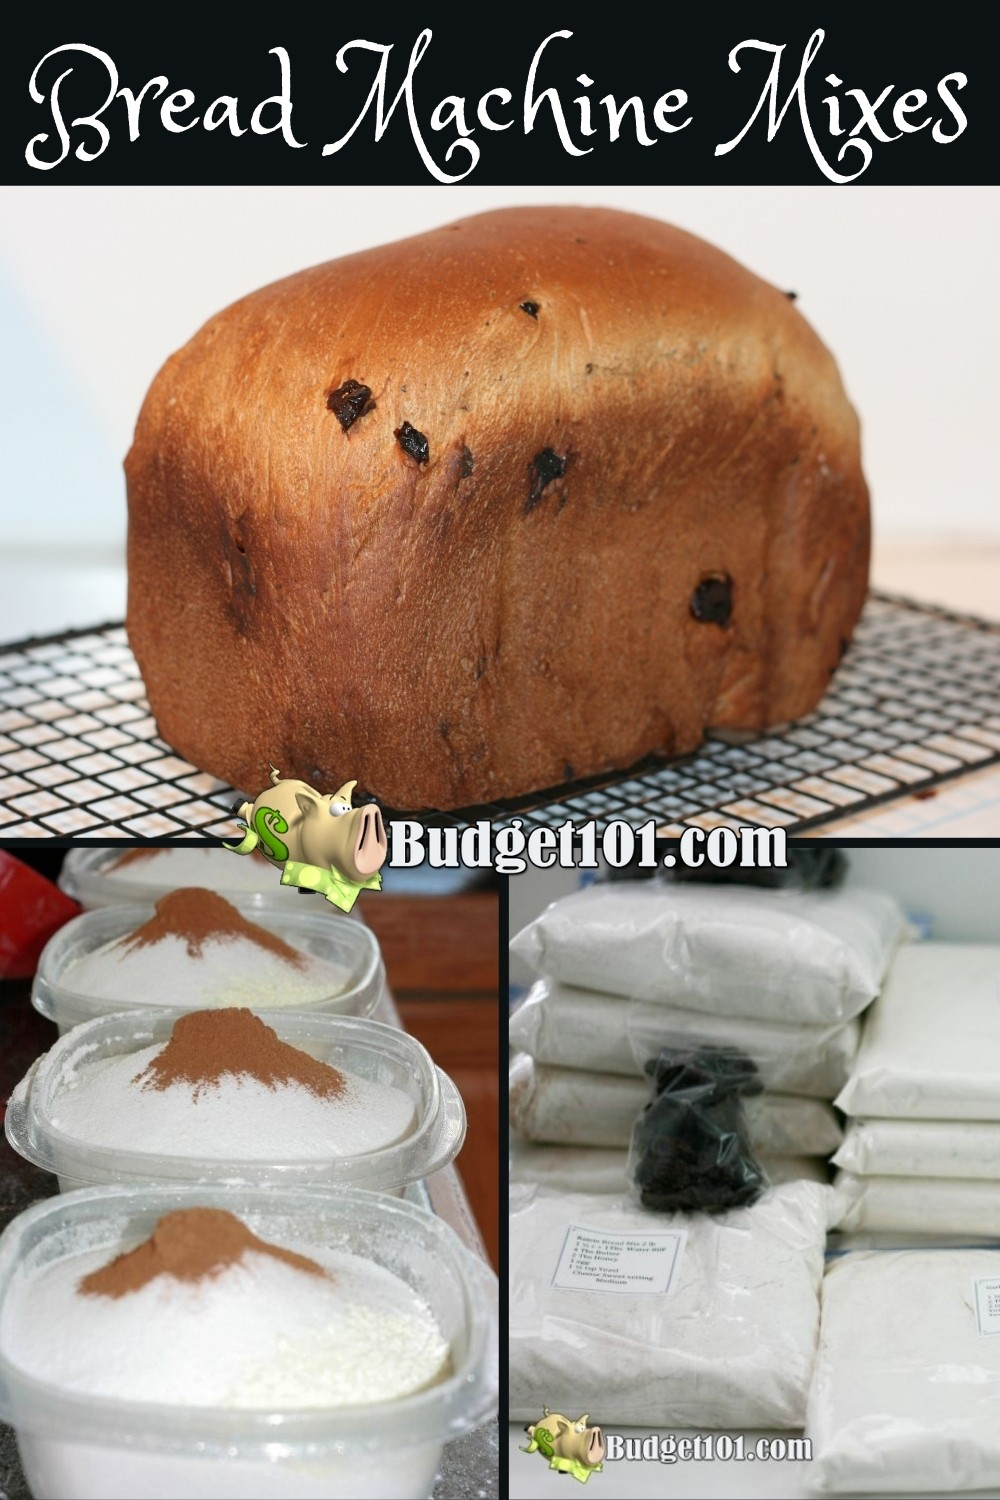 Learn how to make homemade bread machine mixes in just a few minutes for hot, fresh bread anytime! #BreadMachineMixes #Mixes #MYO #homemadeMixes #Budget101